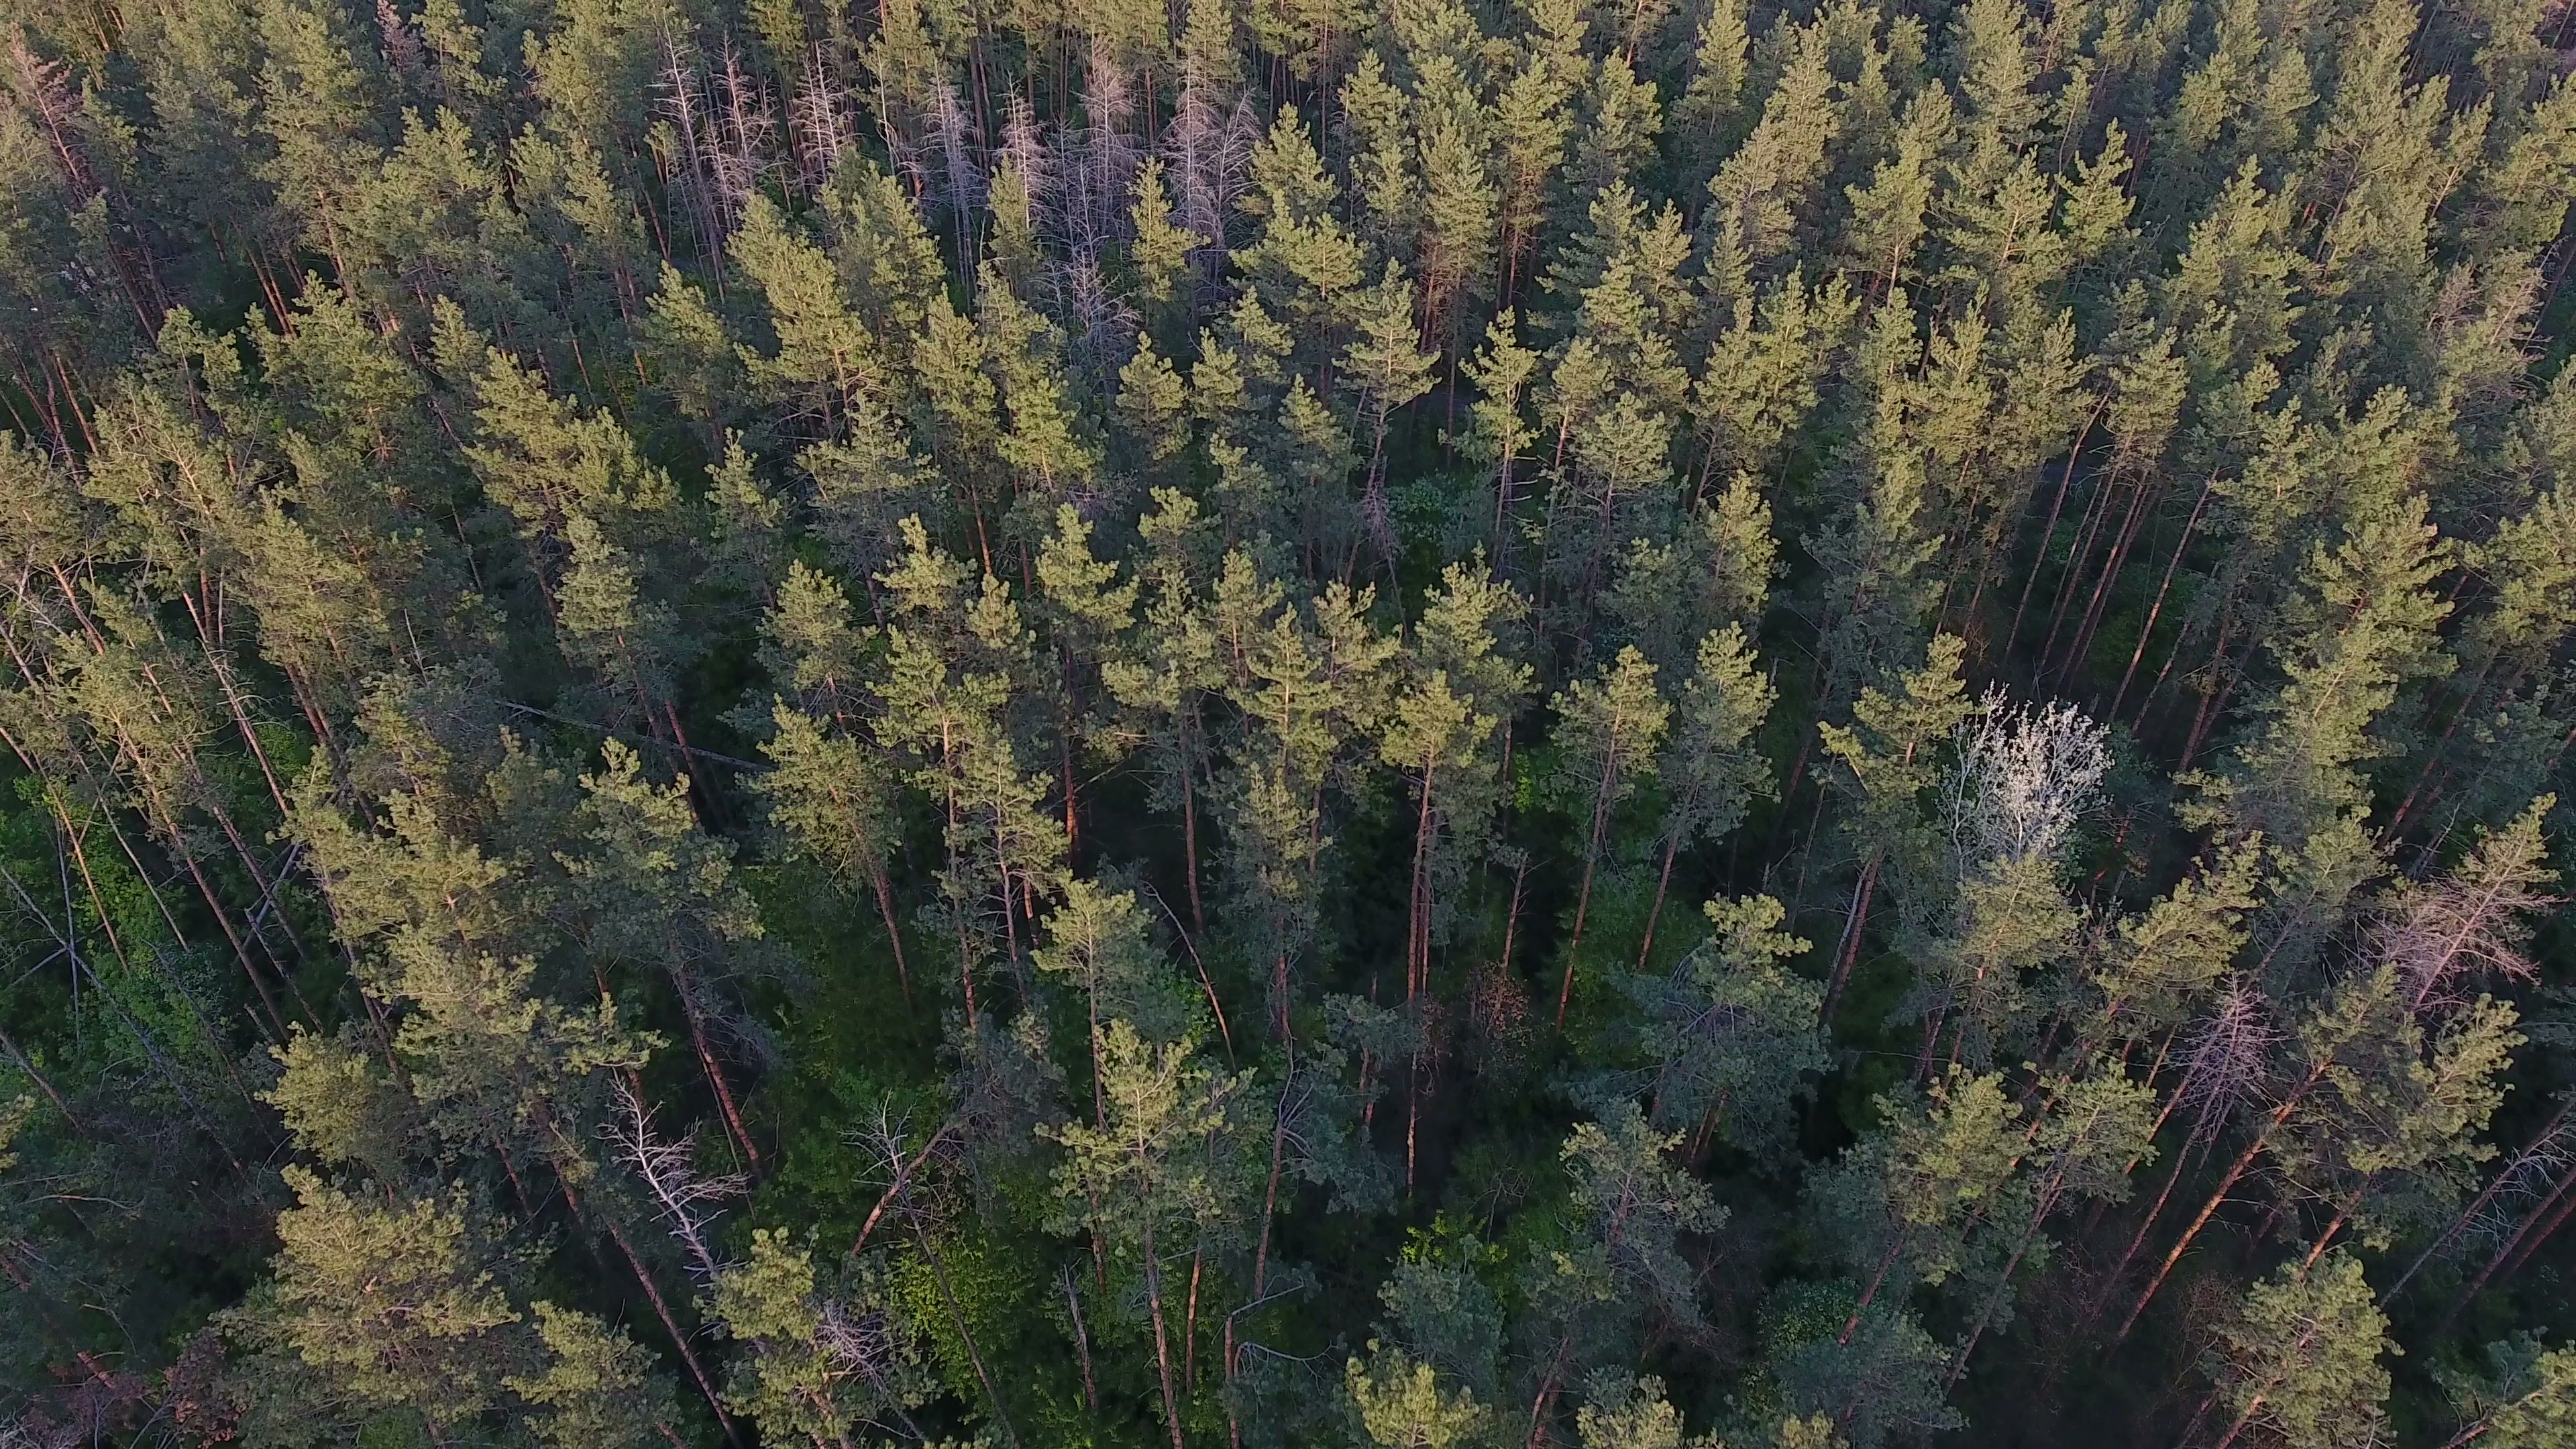 Birds Eye View Of A Forest